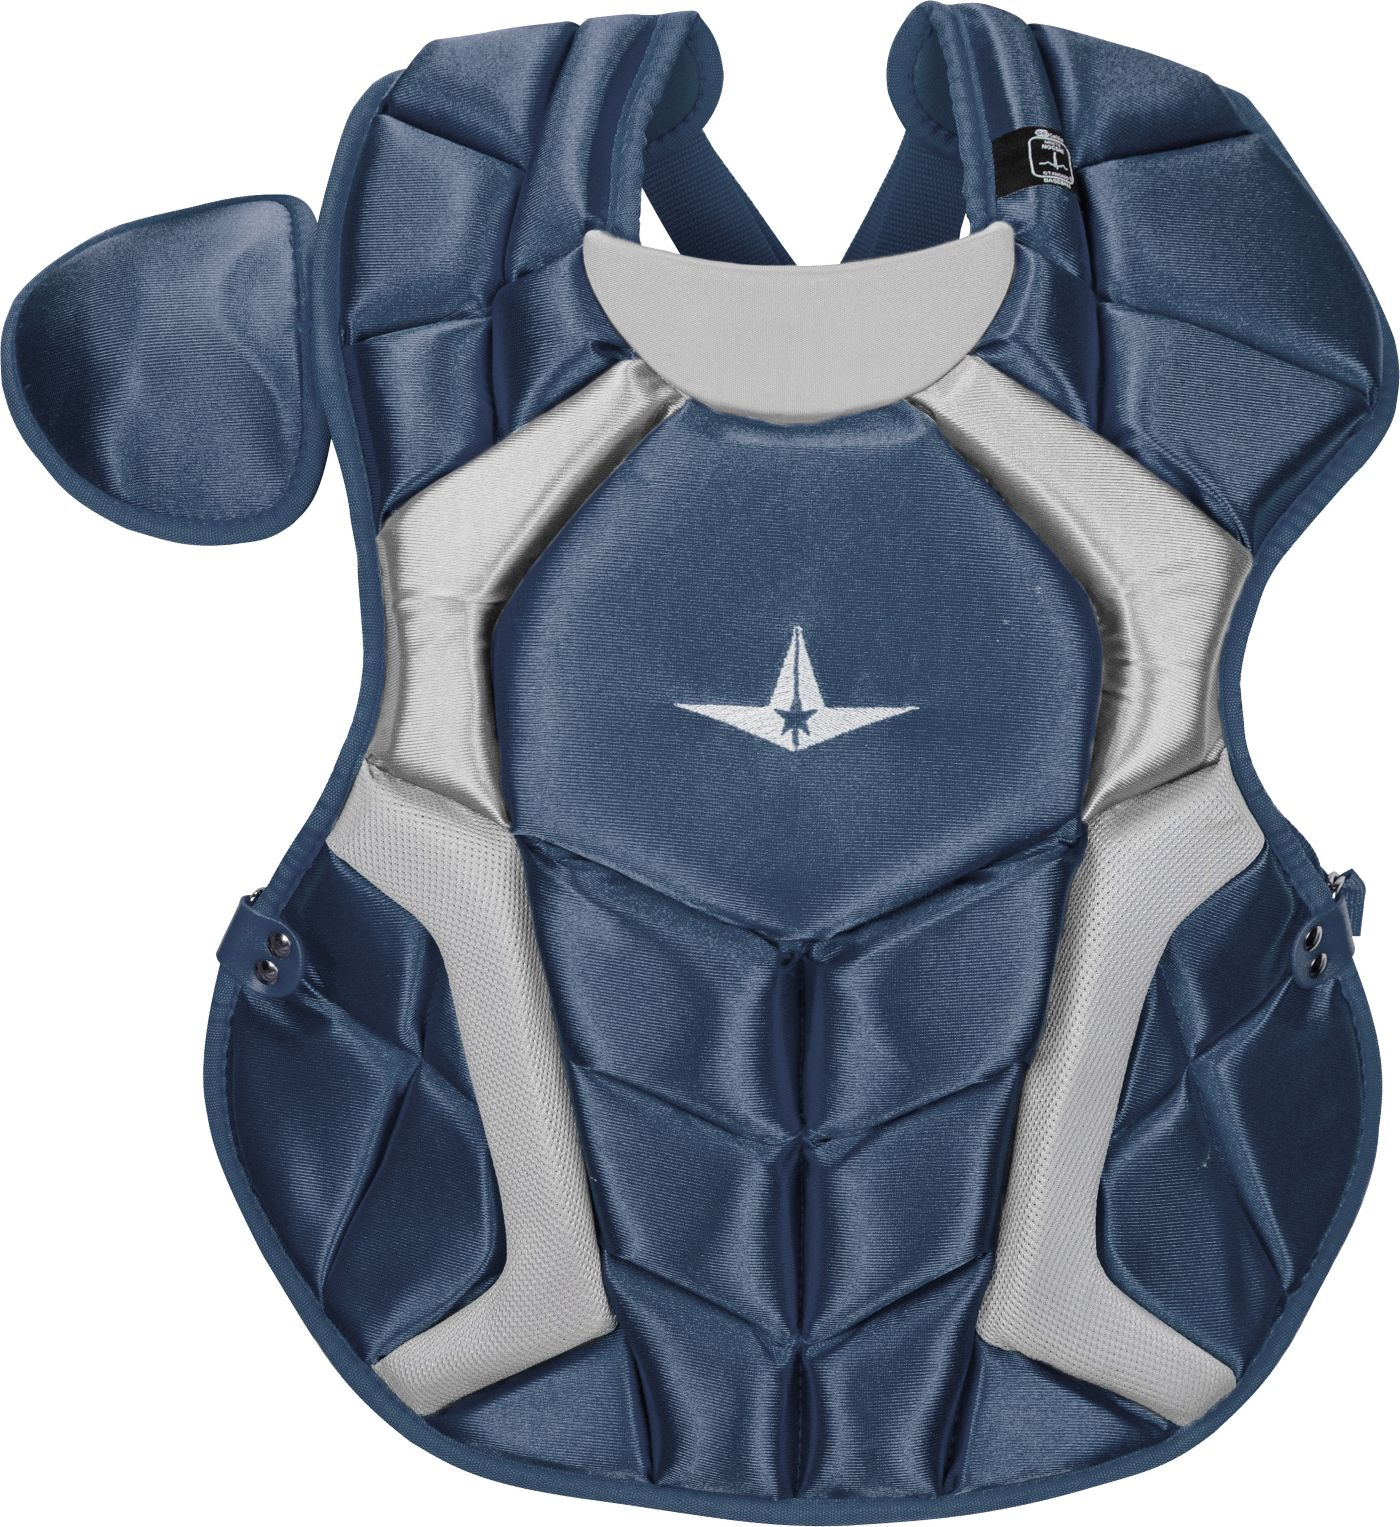 All-Star Youth 13.5'' Player Series Chest Protector 2019